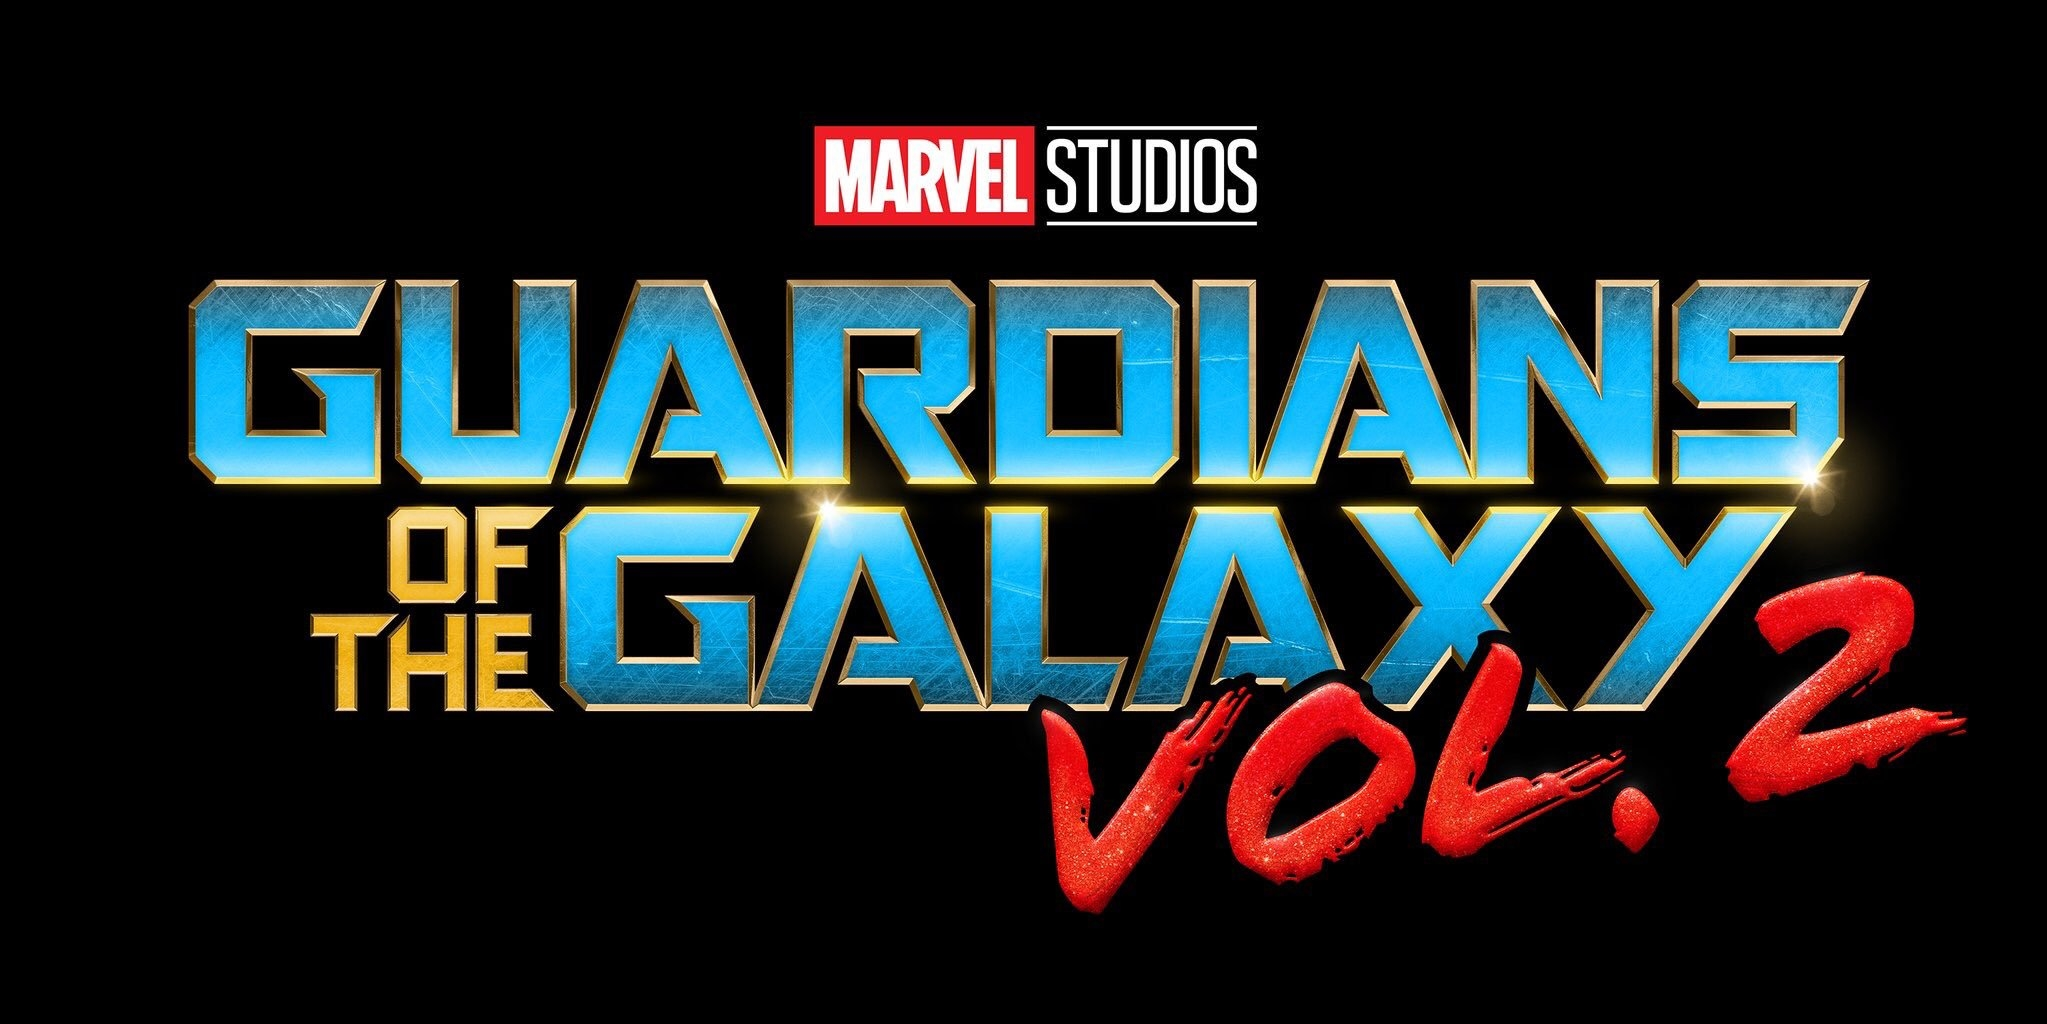 Vin Diesel teases 'Guardians Of The Galaxy' spin-off